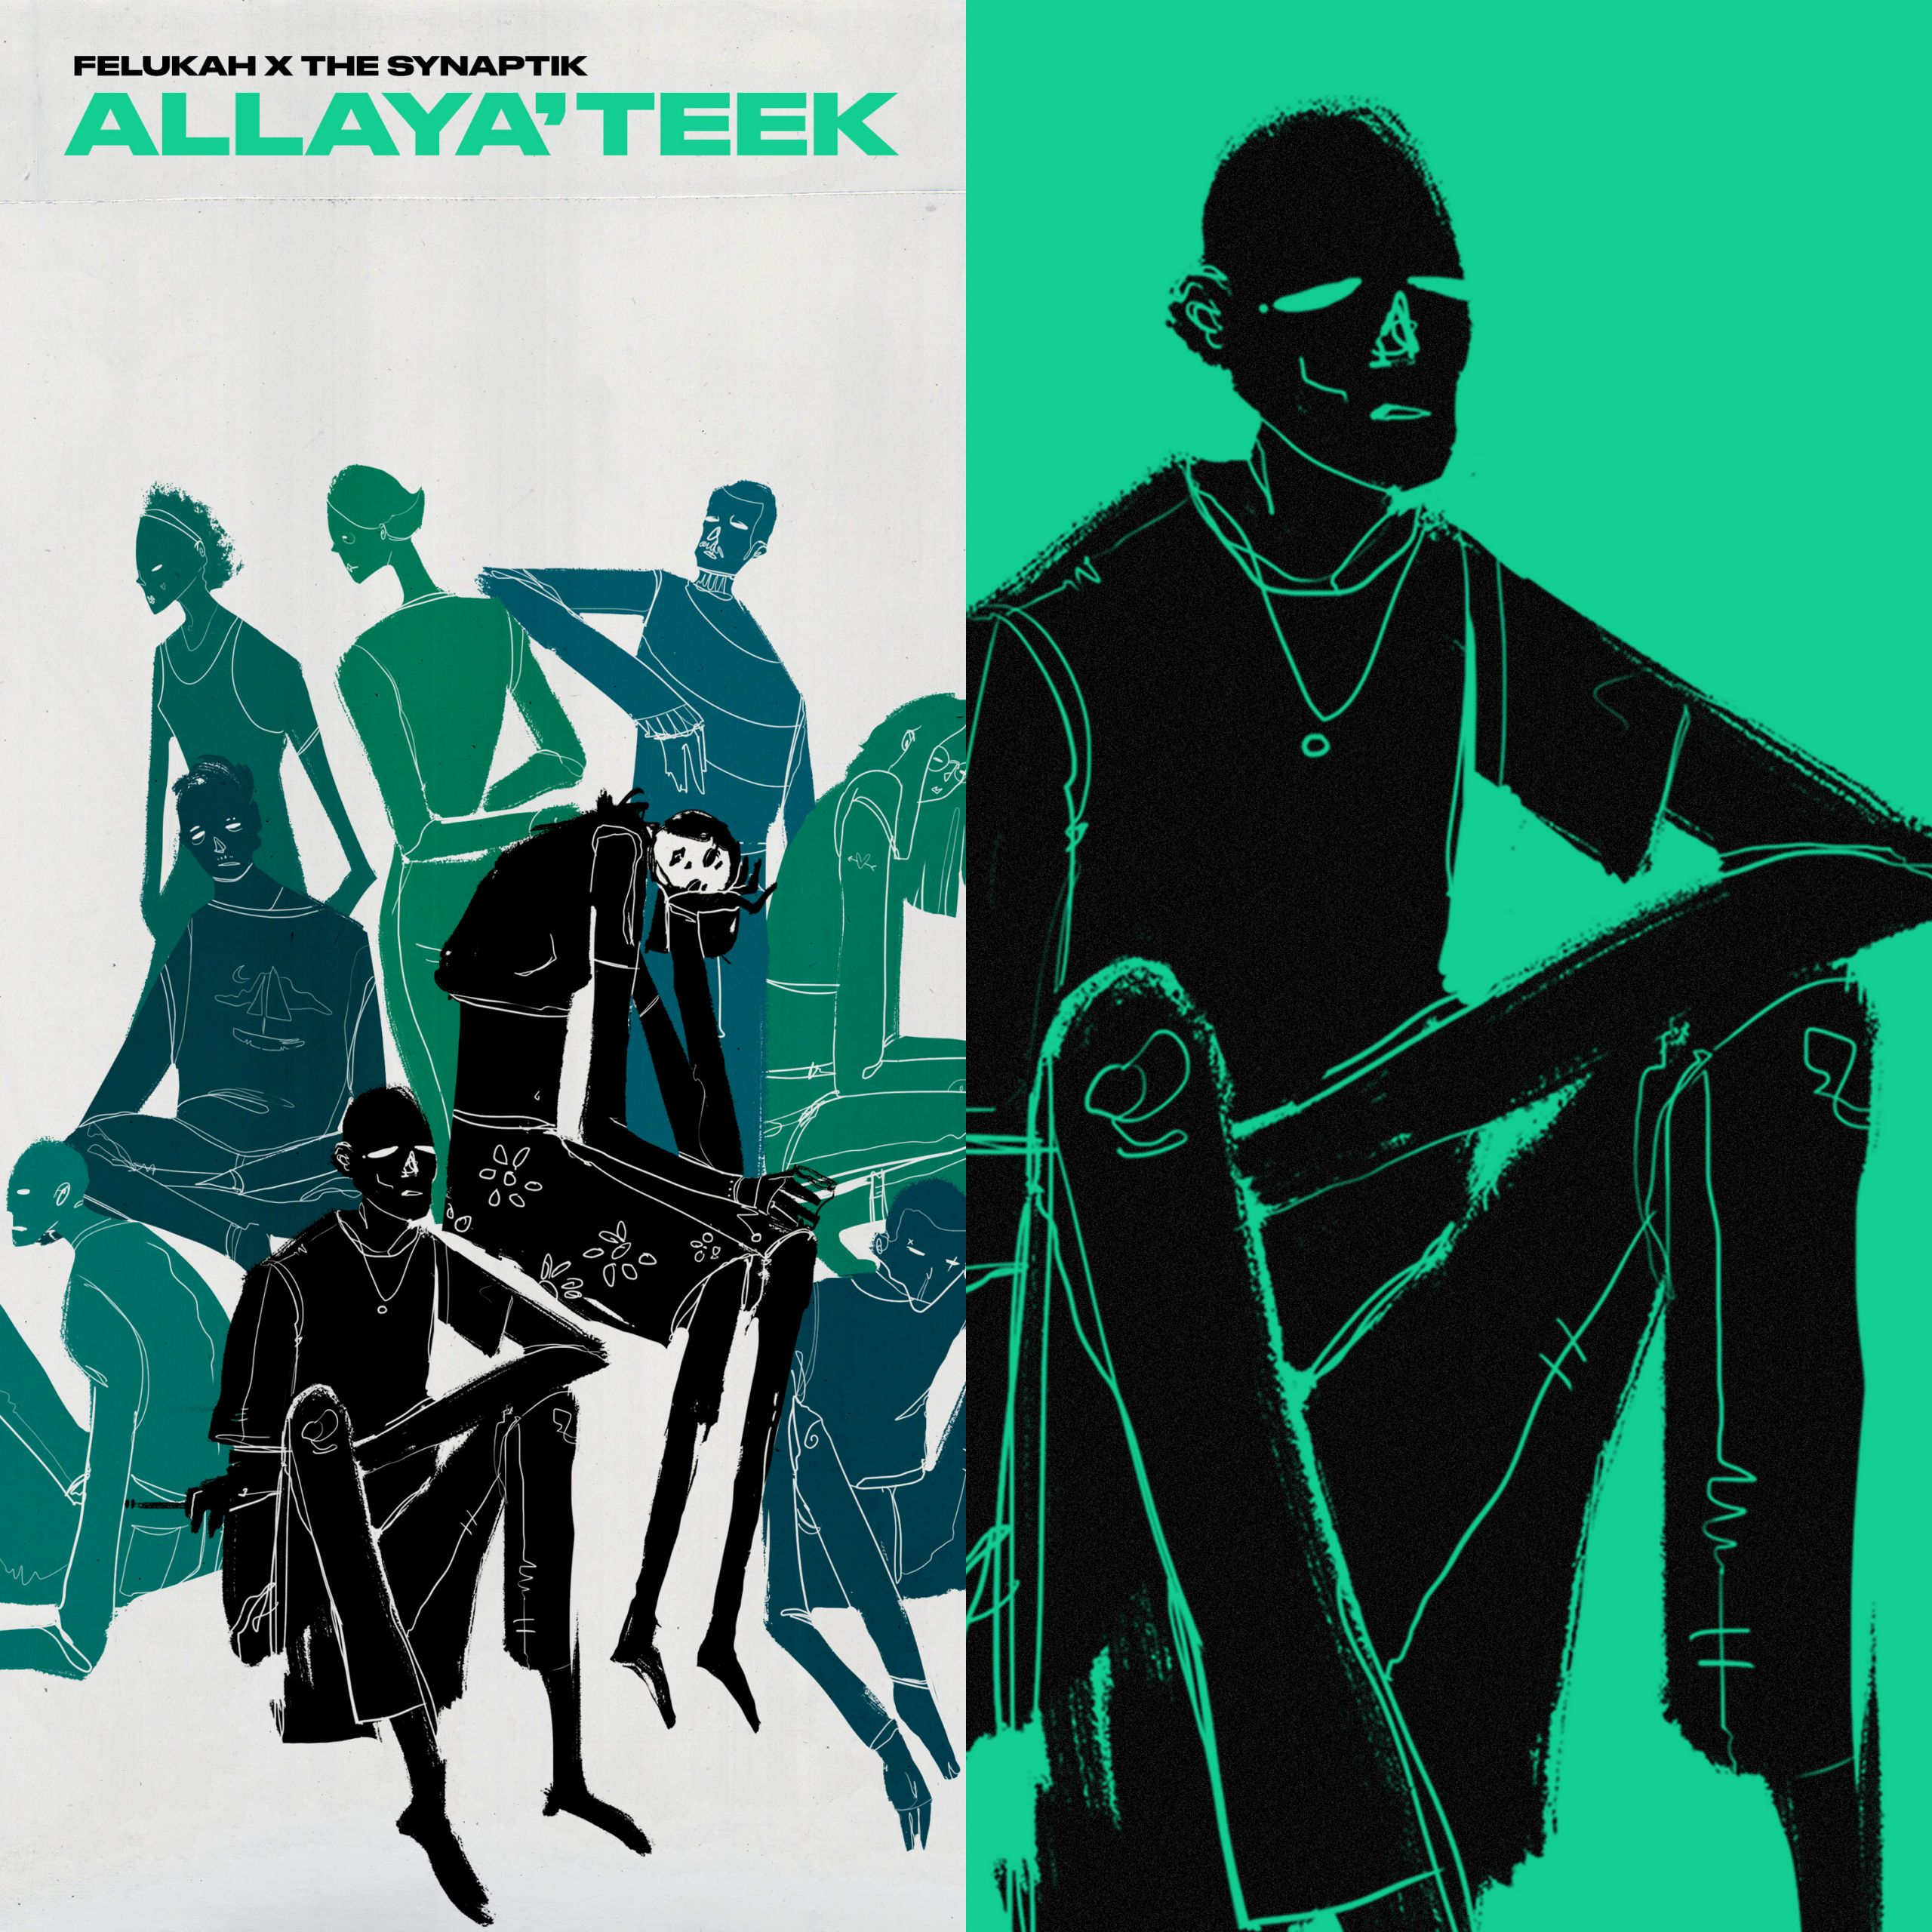 Graphic artwork for the single Allaya'teek featuring black, green and blue figures